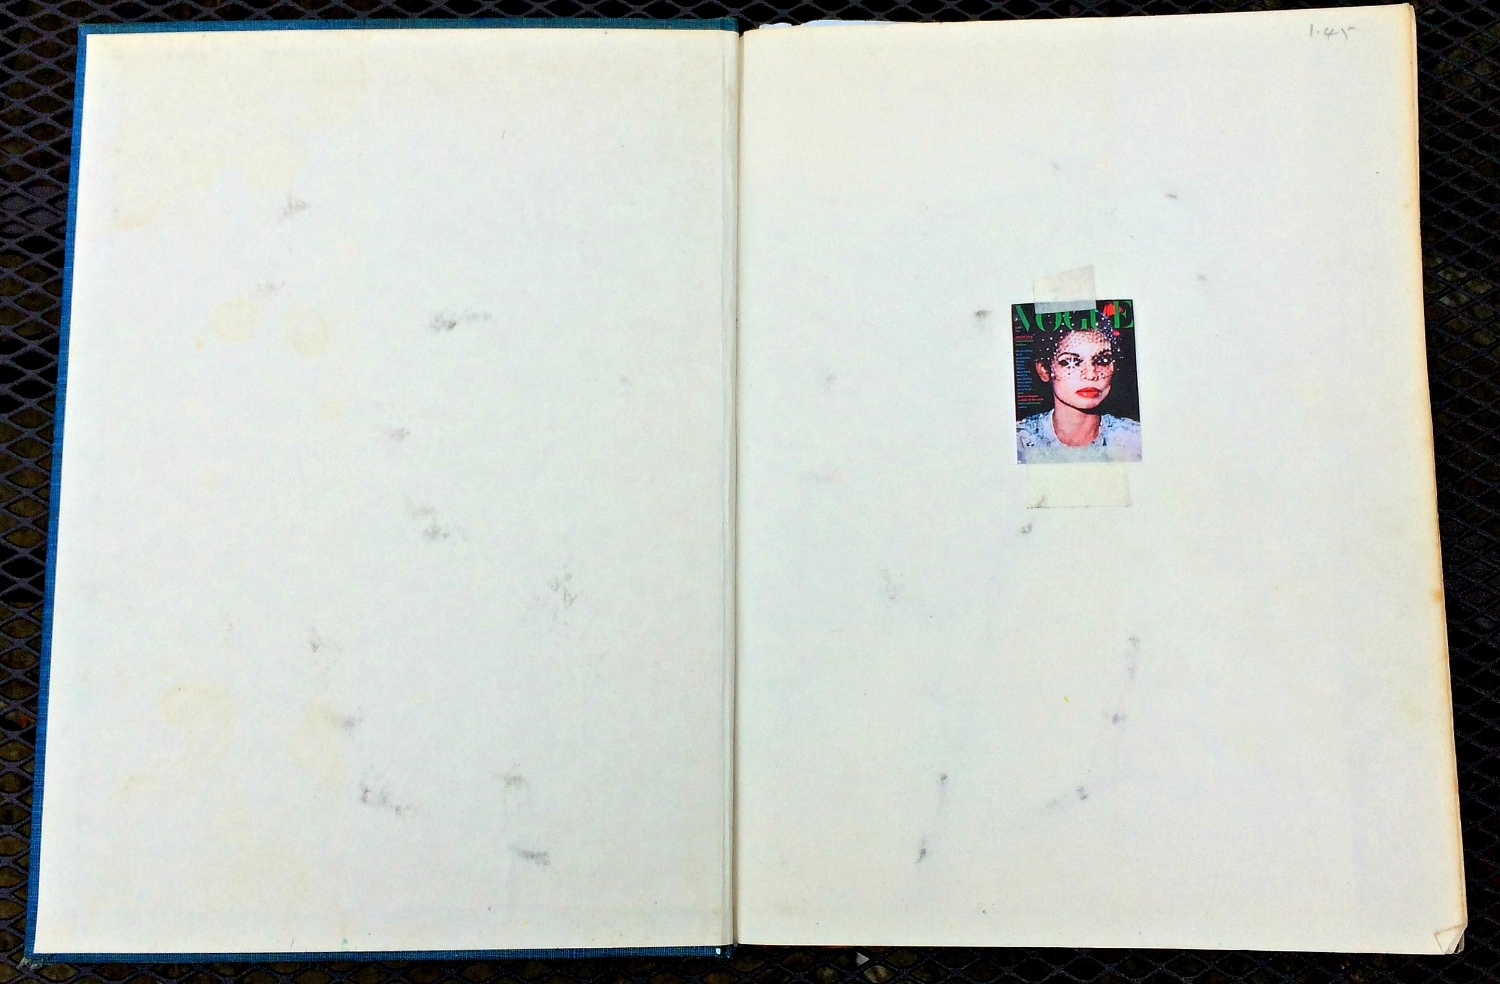 Altered Book (Disco Dance Moves): Bianca Jagger